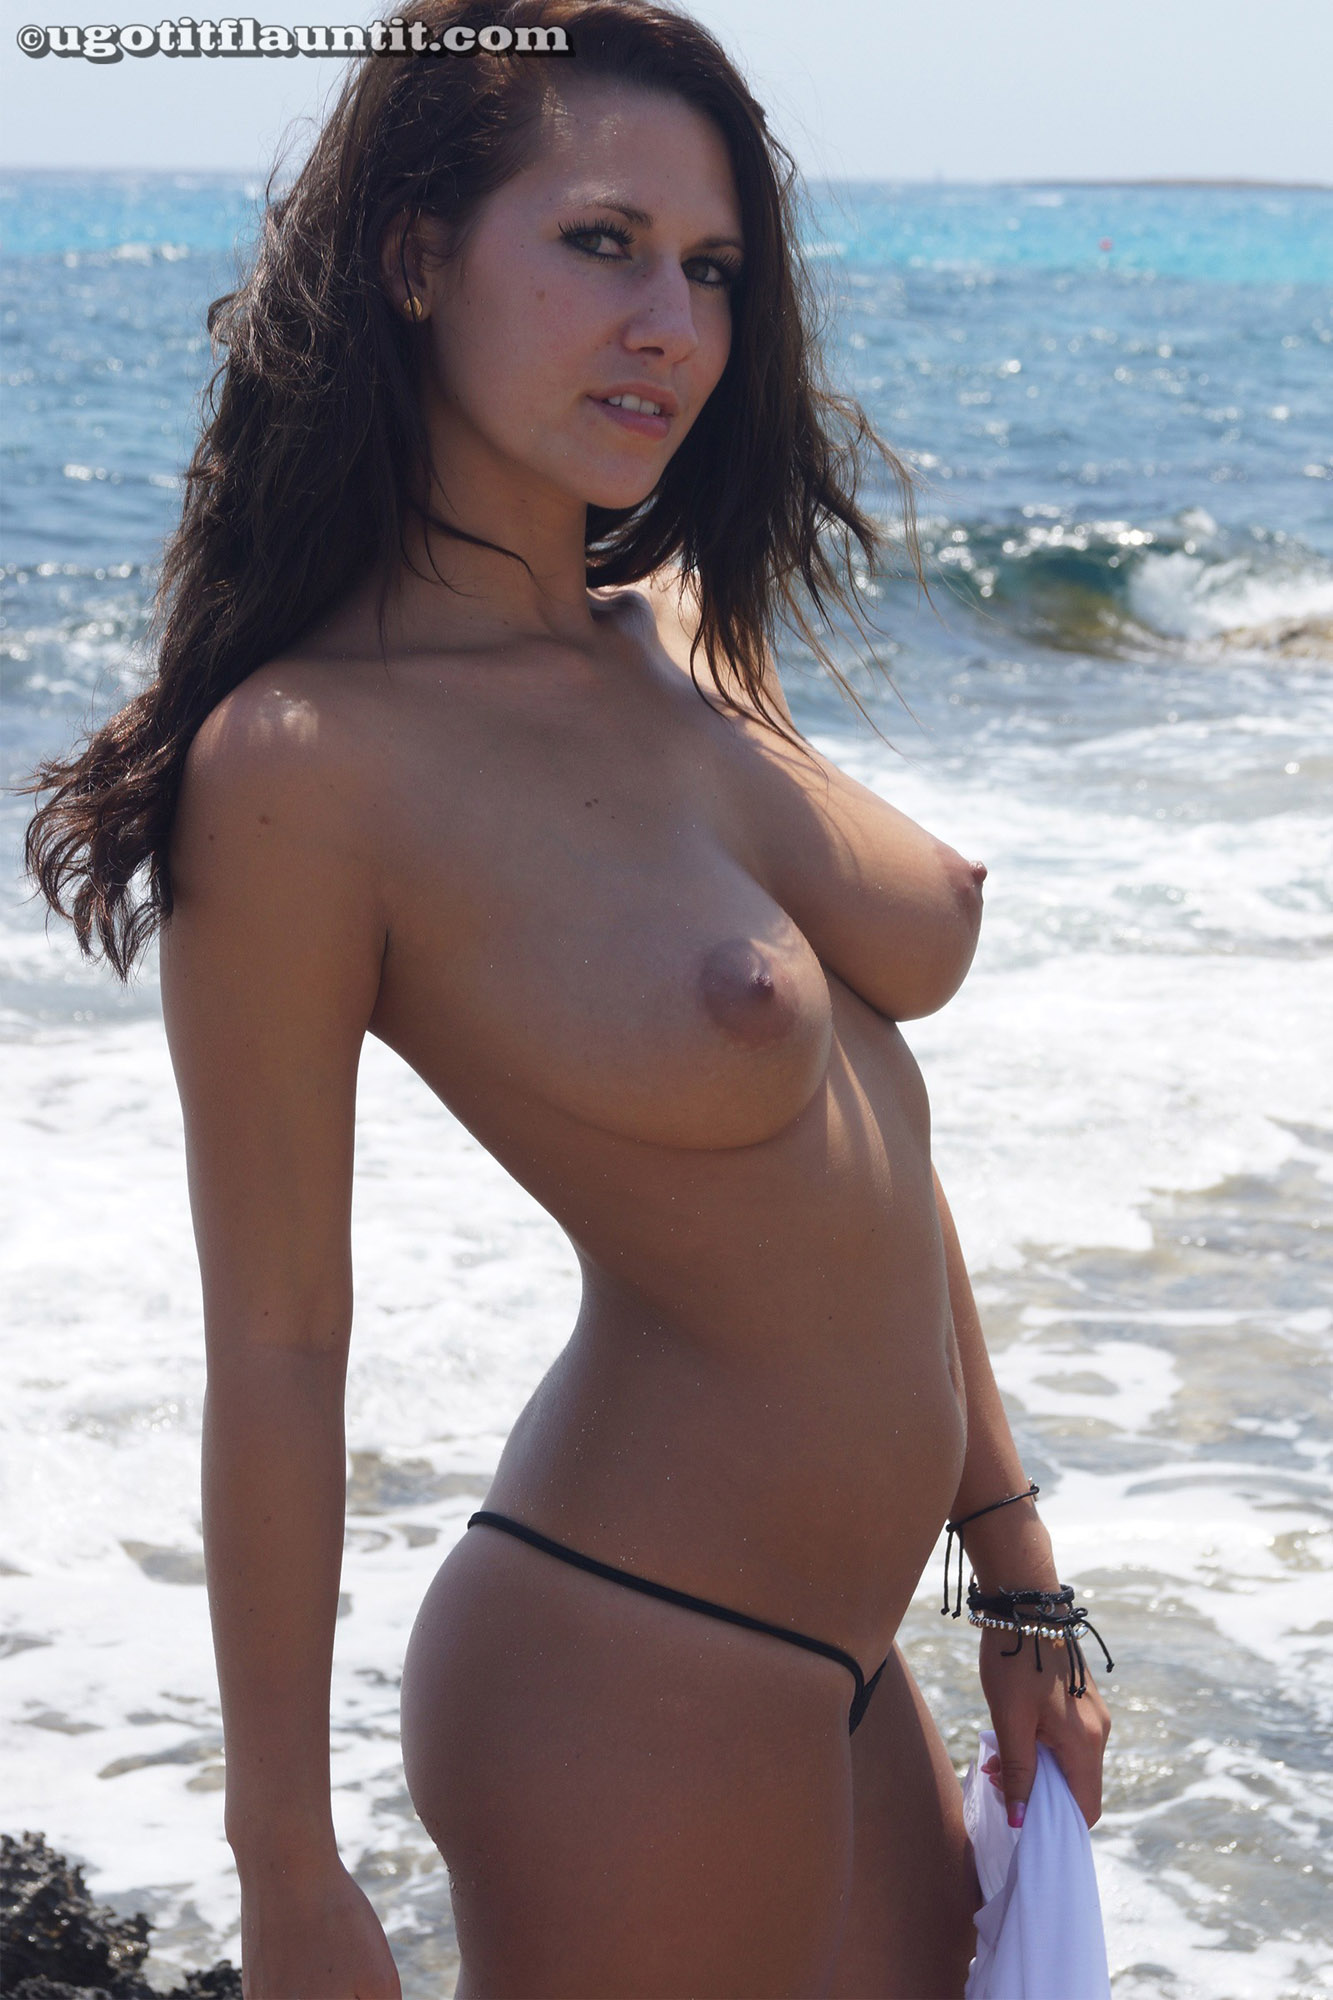 Great Boobs Topless On The Beach Video